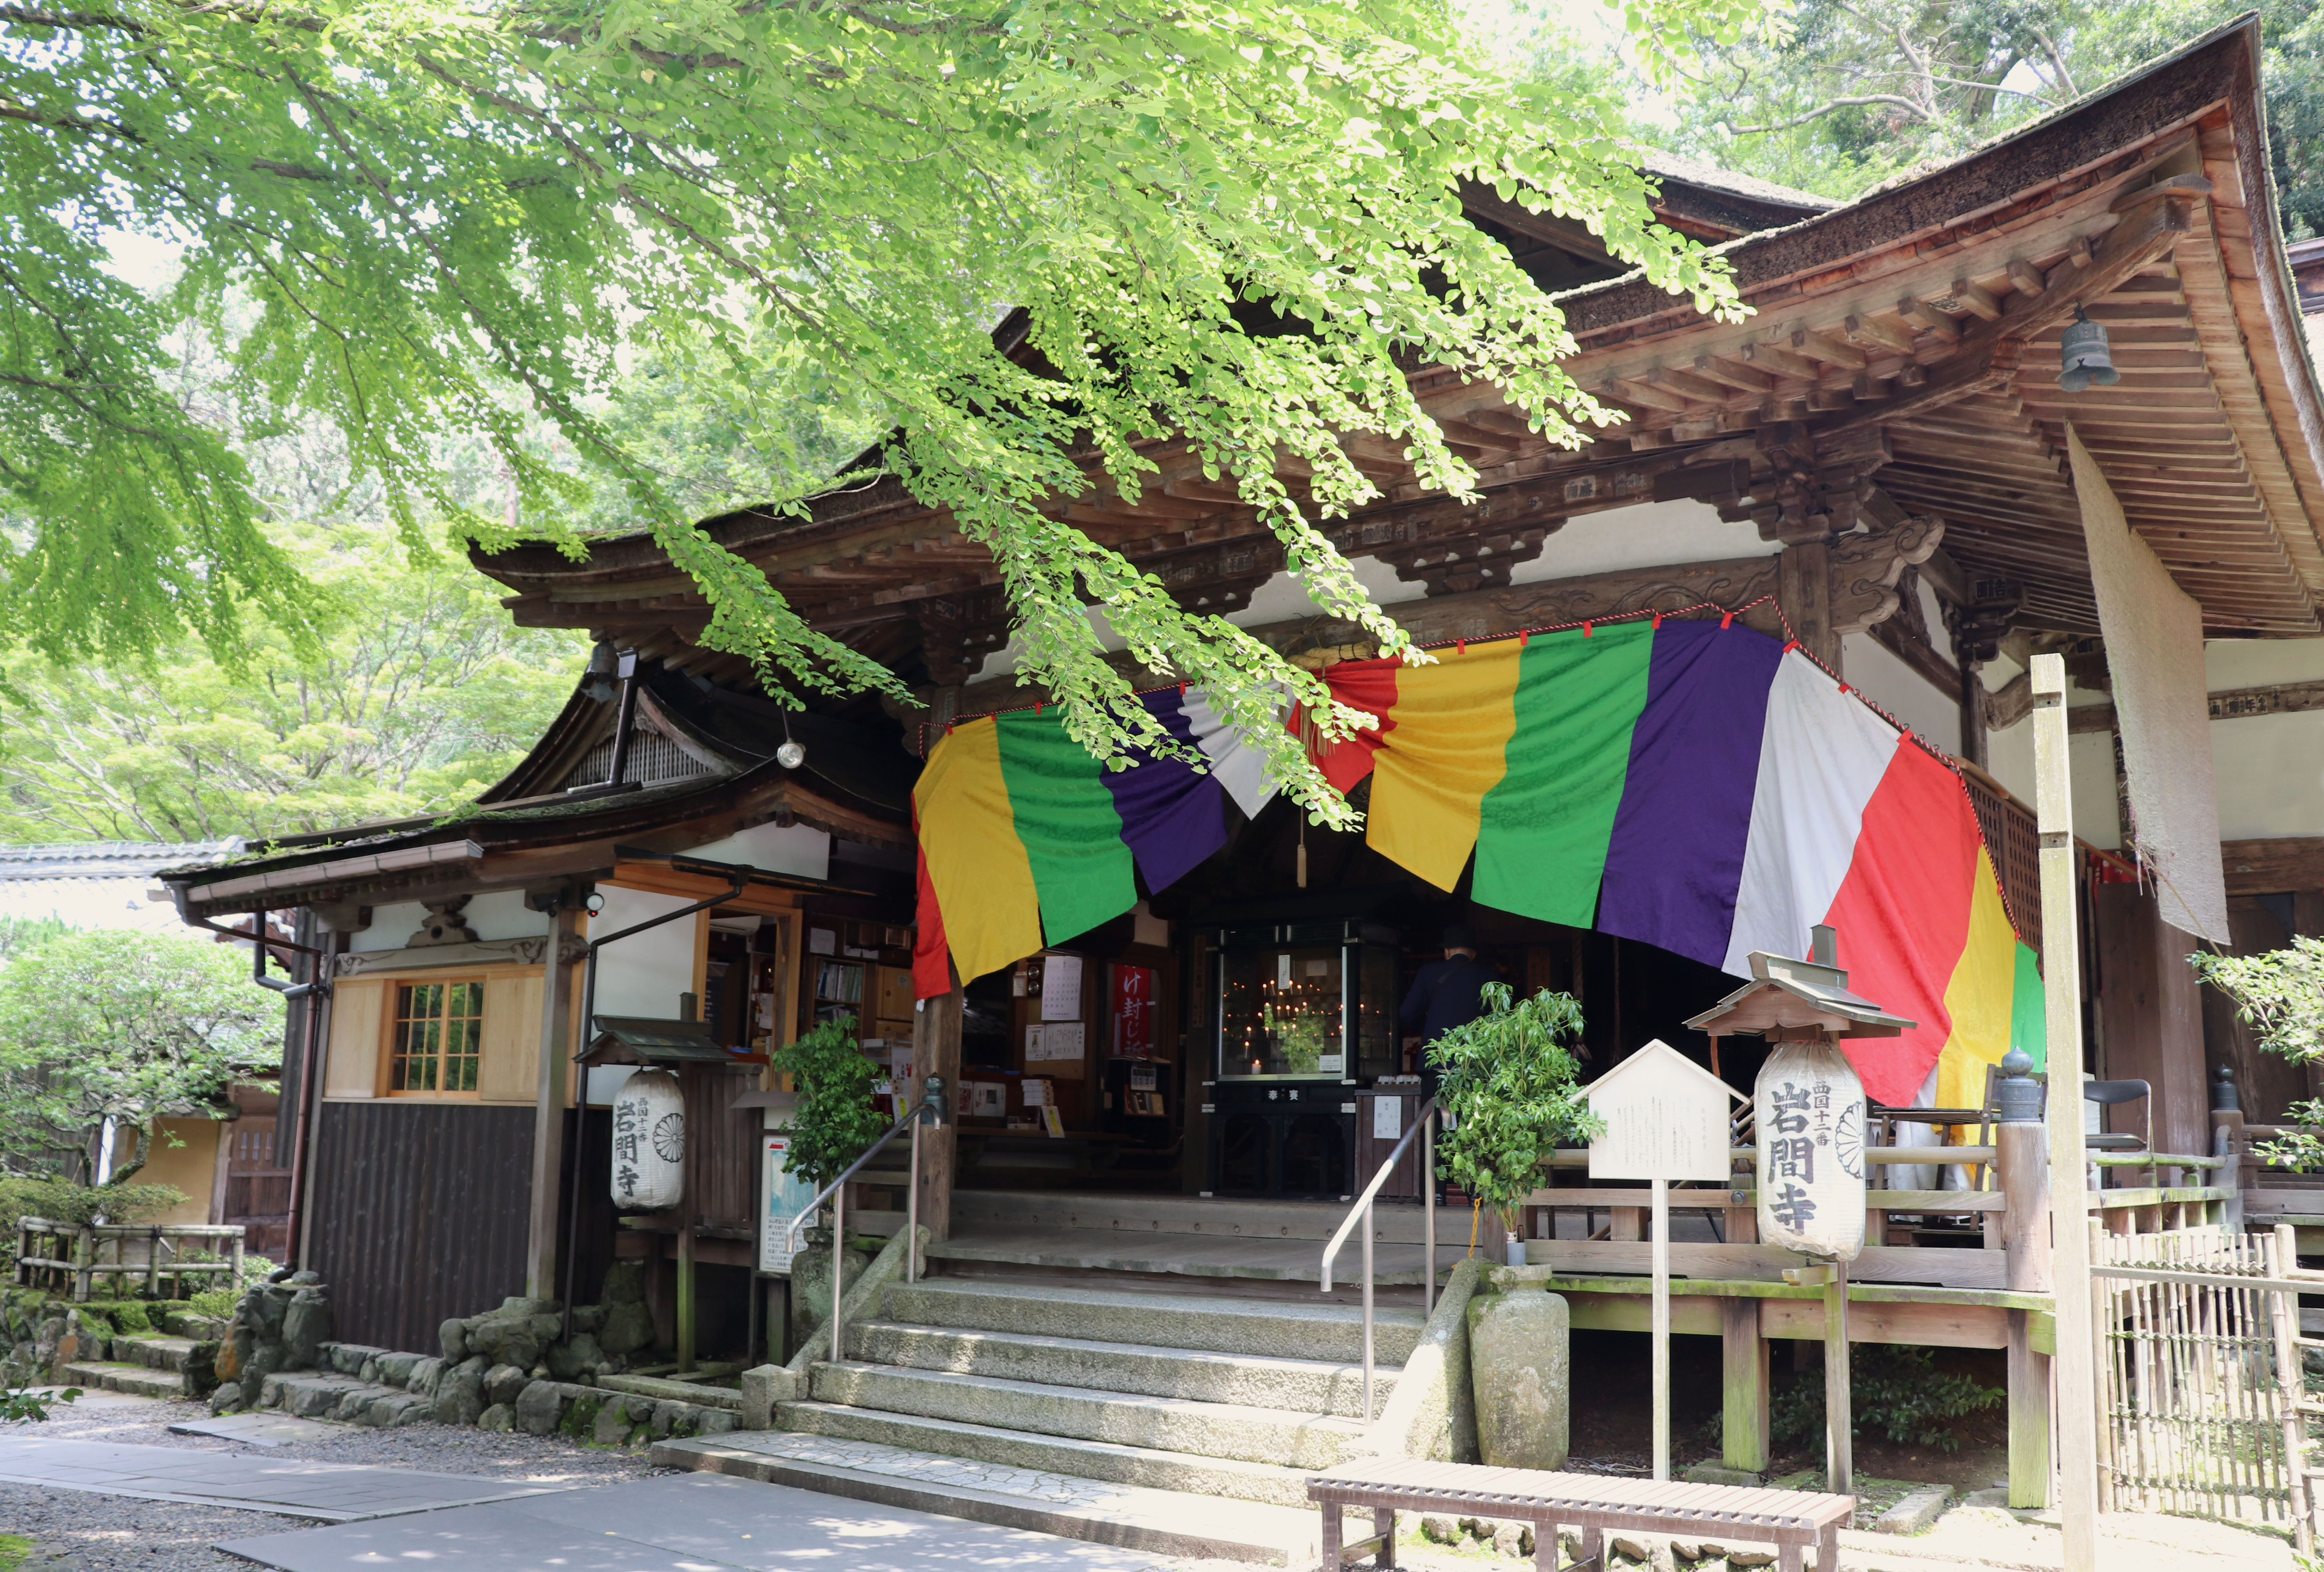 Iwama-dera Temple, the Temple of the Sweating Statue